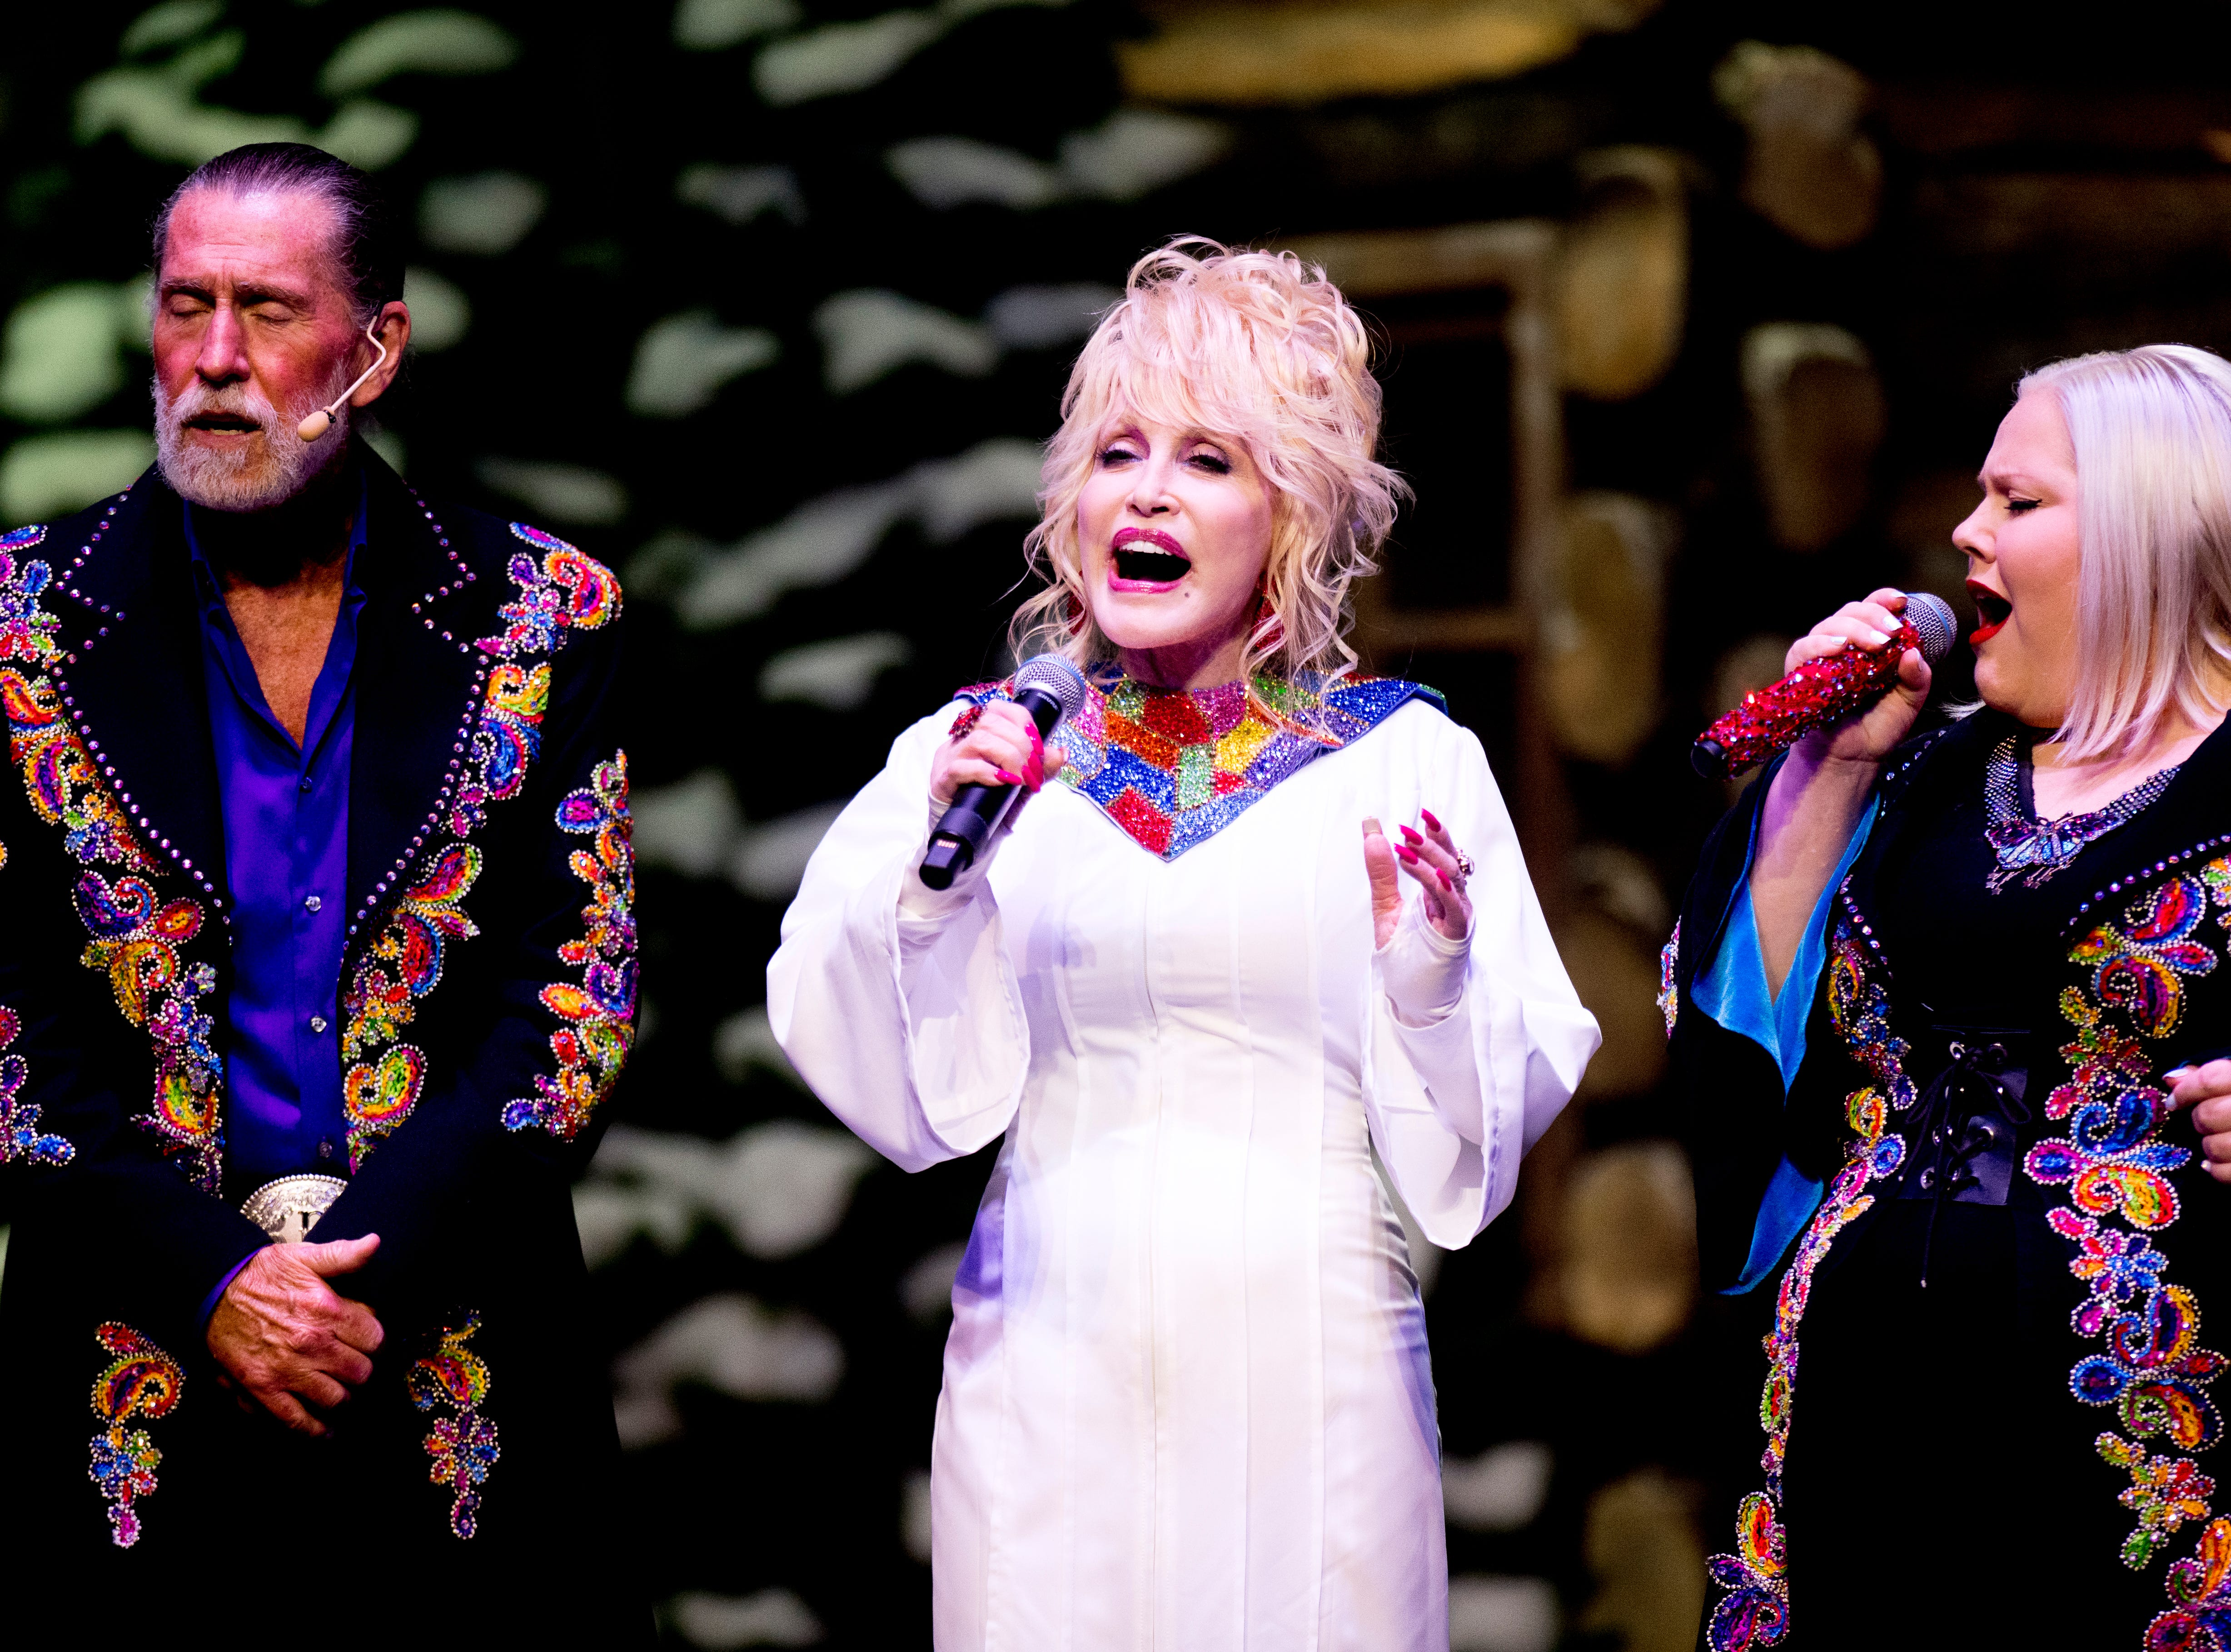 Dolly Parton and her brother Randy Parton, left, and her niece Heidi Parton, right, sing during the Christmas in the Smokies show at Dollywood in Pigeon Forge, Tennessee on Friday, November 9, 2018. Glacier Ridge features several new lighting displays, including a 50-ft. tall animated tree, the all new Arctic Passage and the Northern Lights.